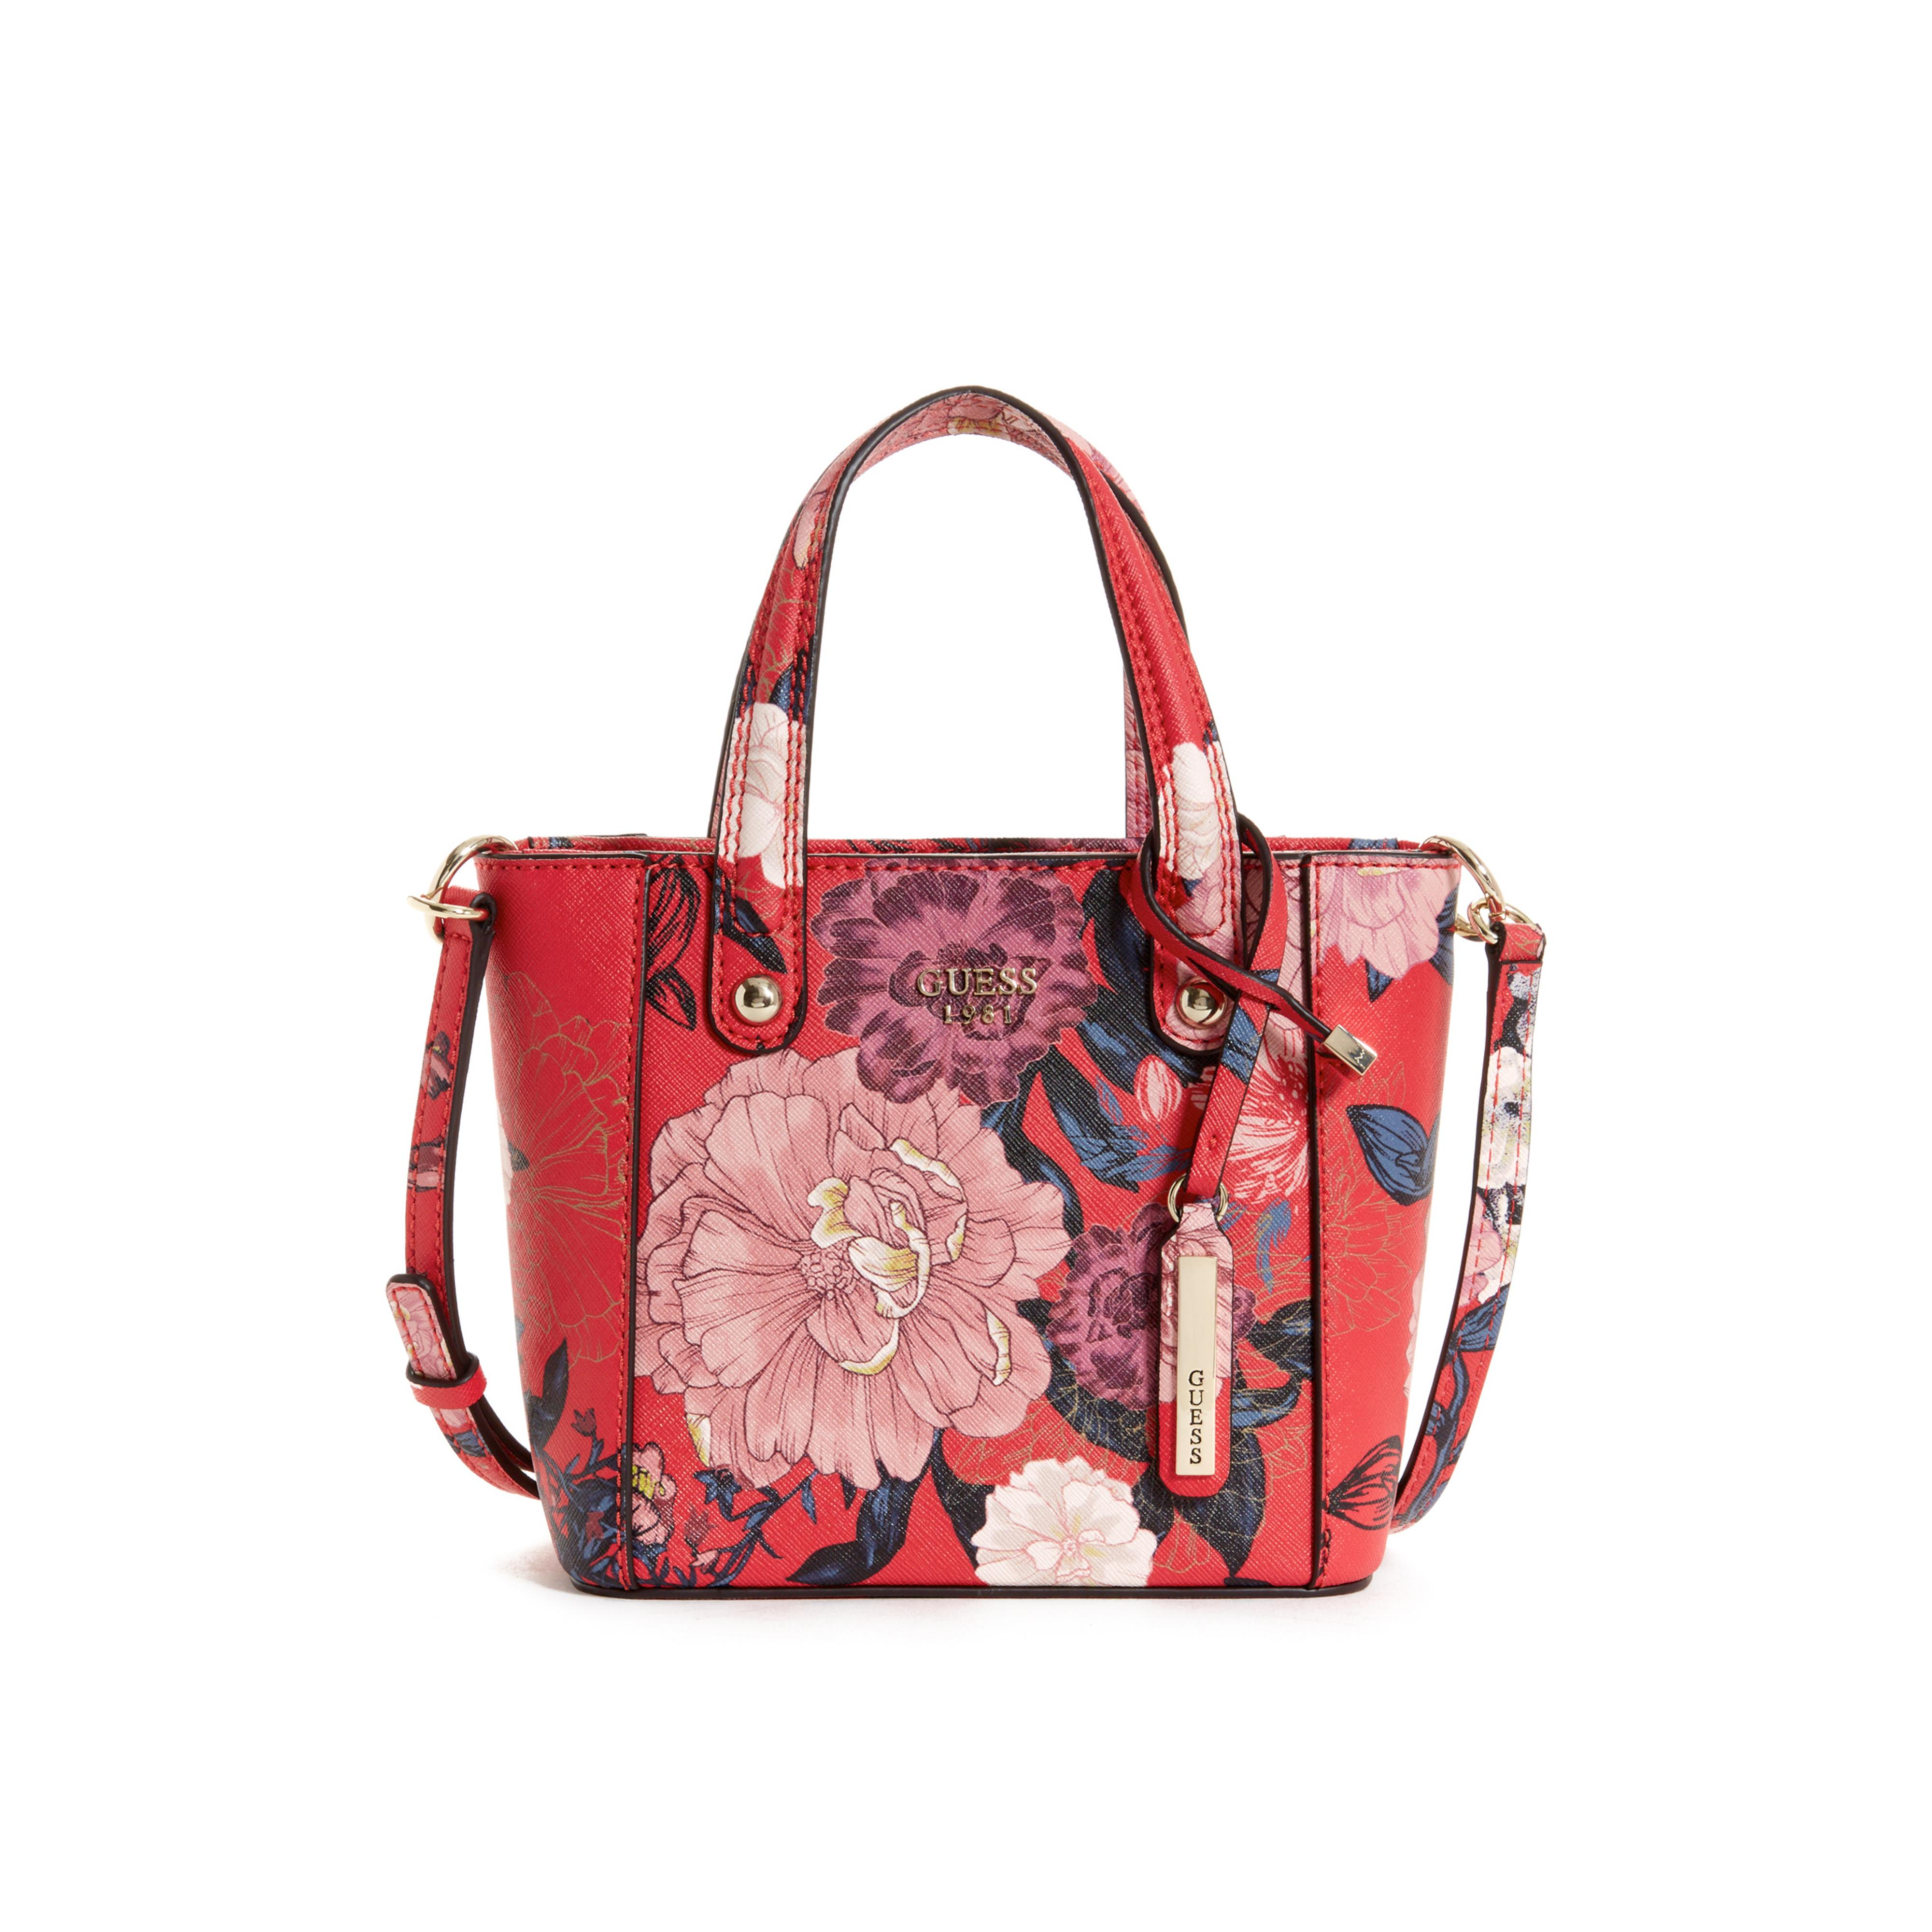 Lyst - Guess Kamryn Mini Floral Tote In Red